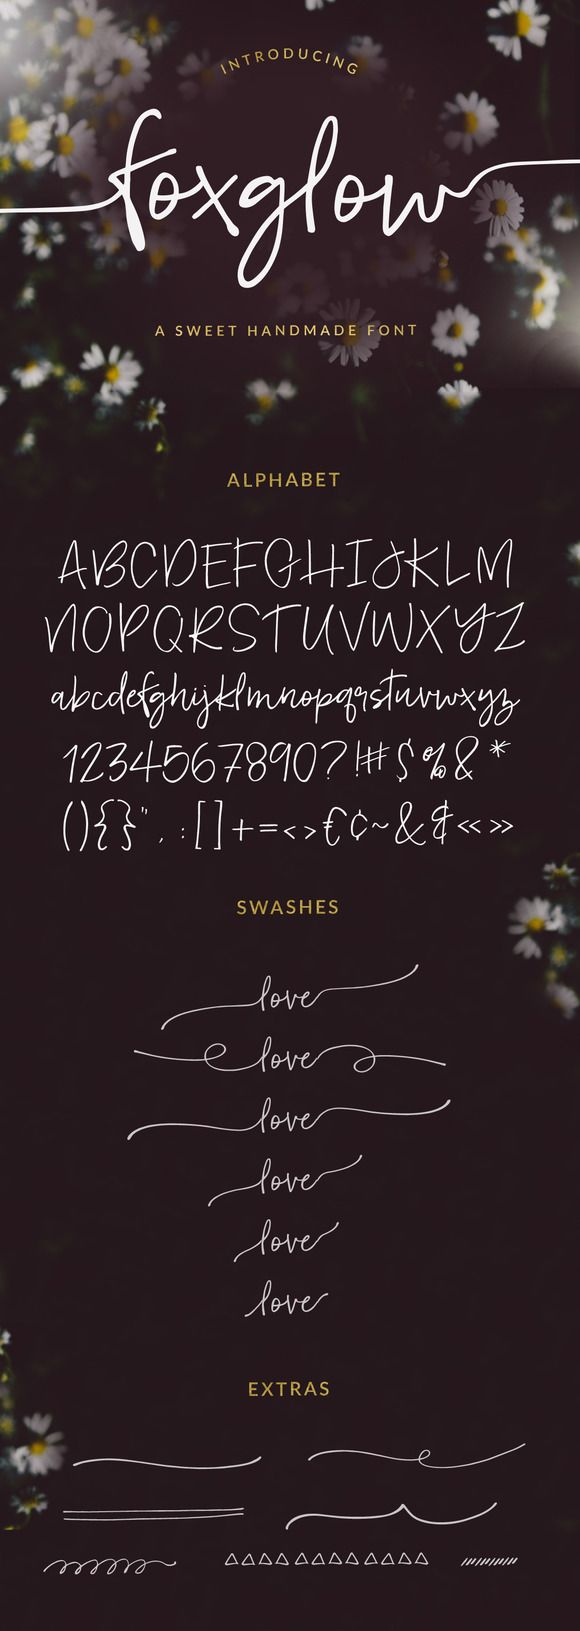 Foxglow Font by Angie Makes on @creativemarket